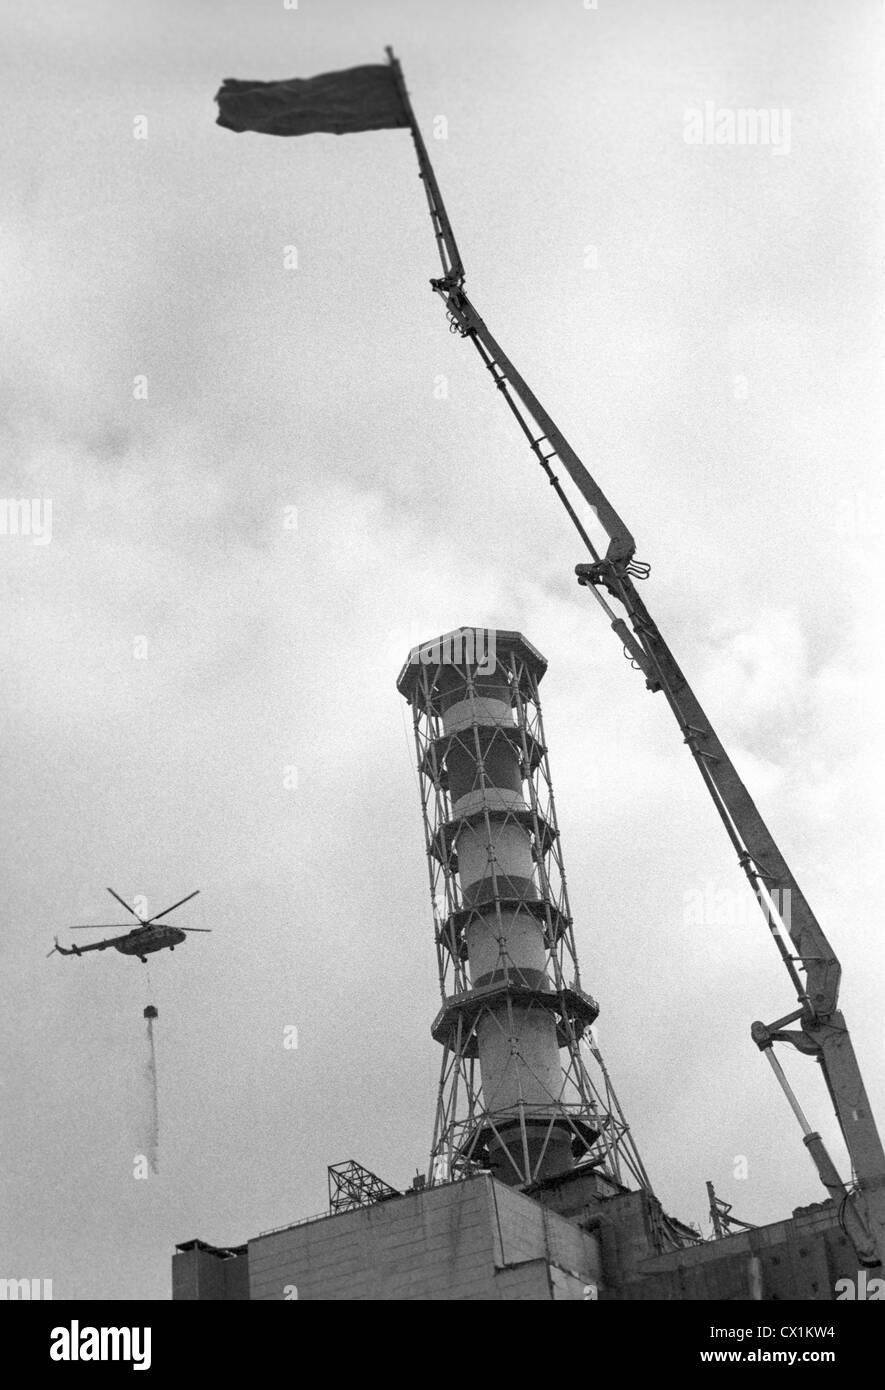 Ukrainian SSR. USSR. Construction of the Chernobyl Nuclear Power Plant sarcophagus over Reactor 4 of the Chernobyl - Stock Image